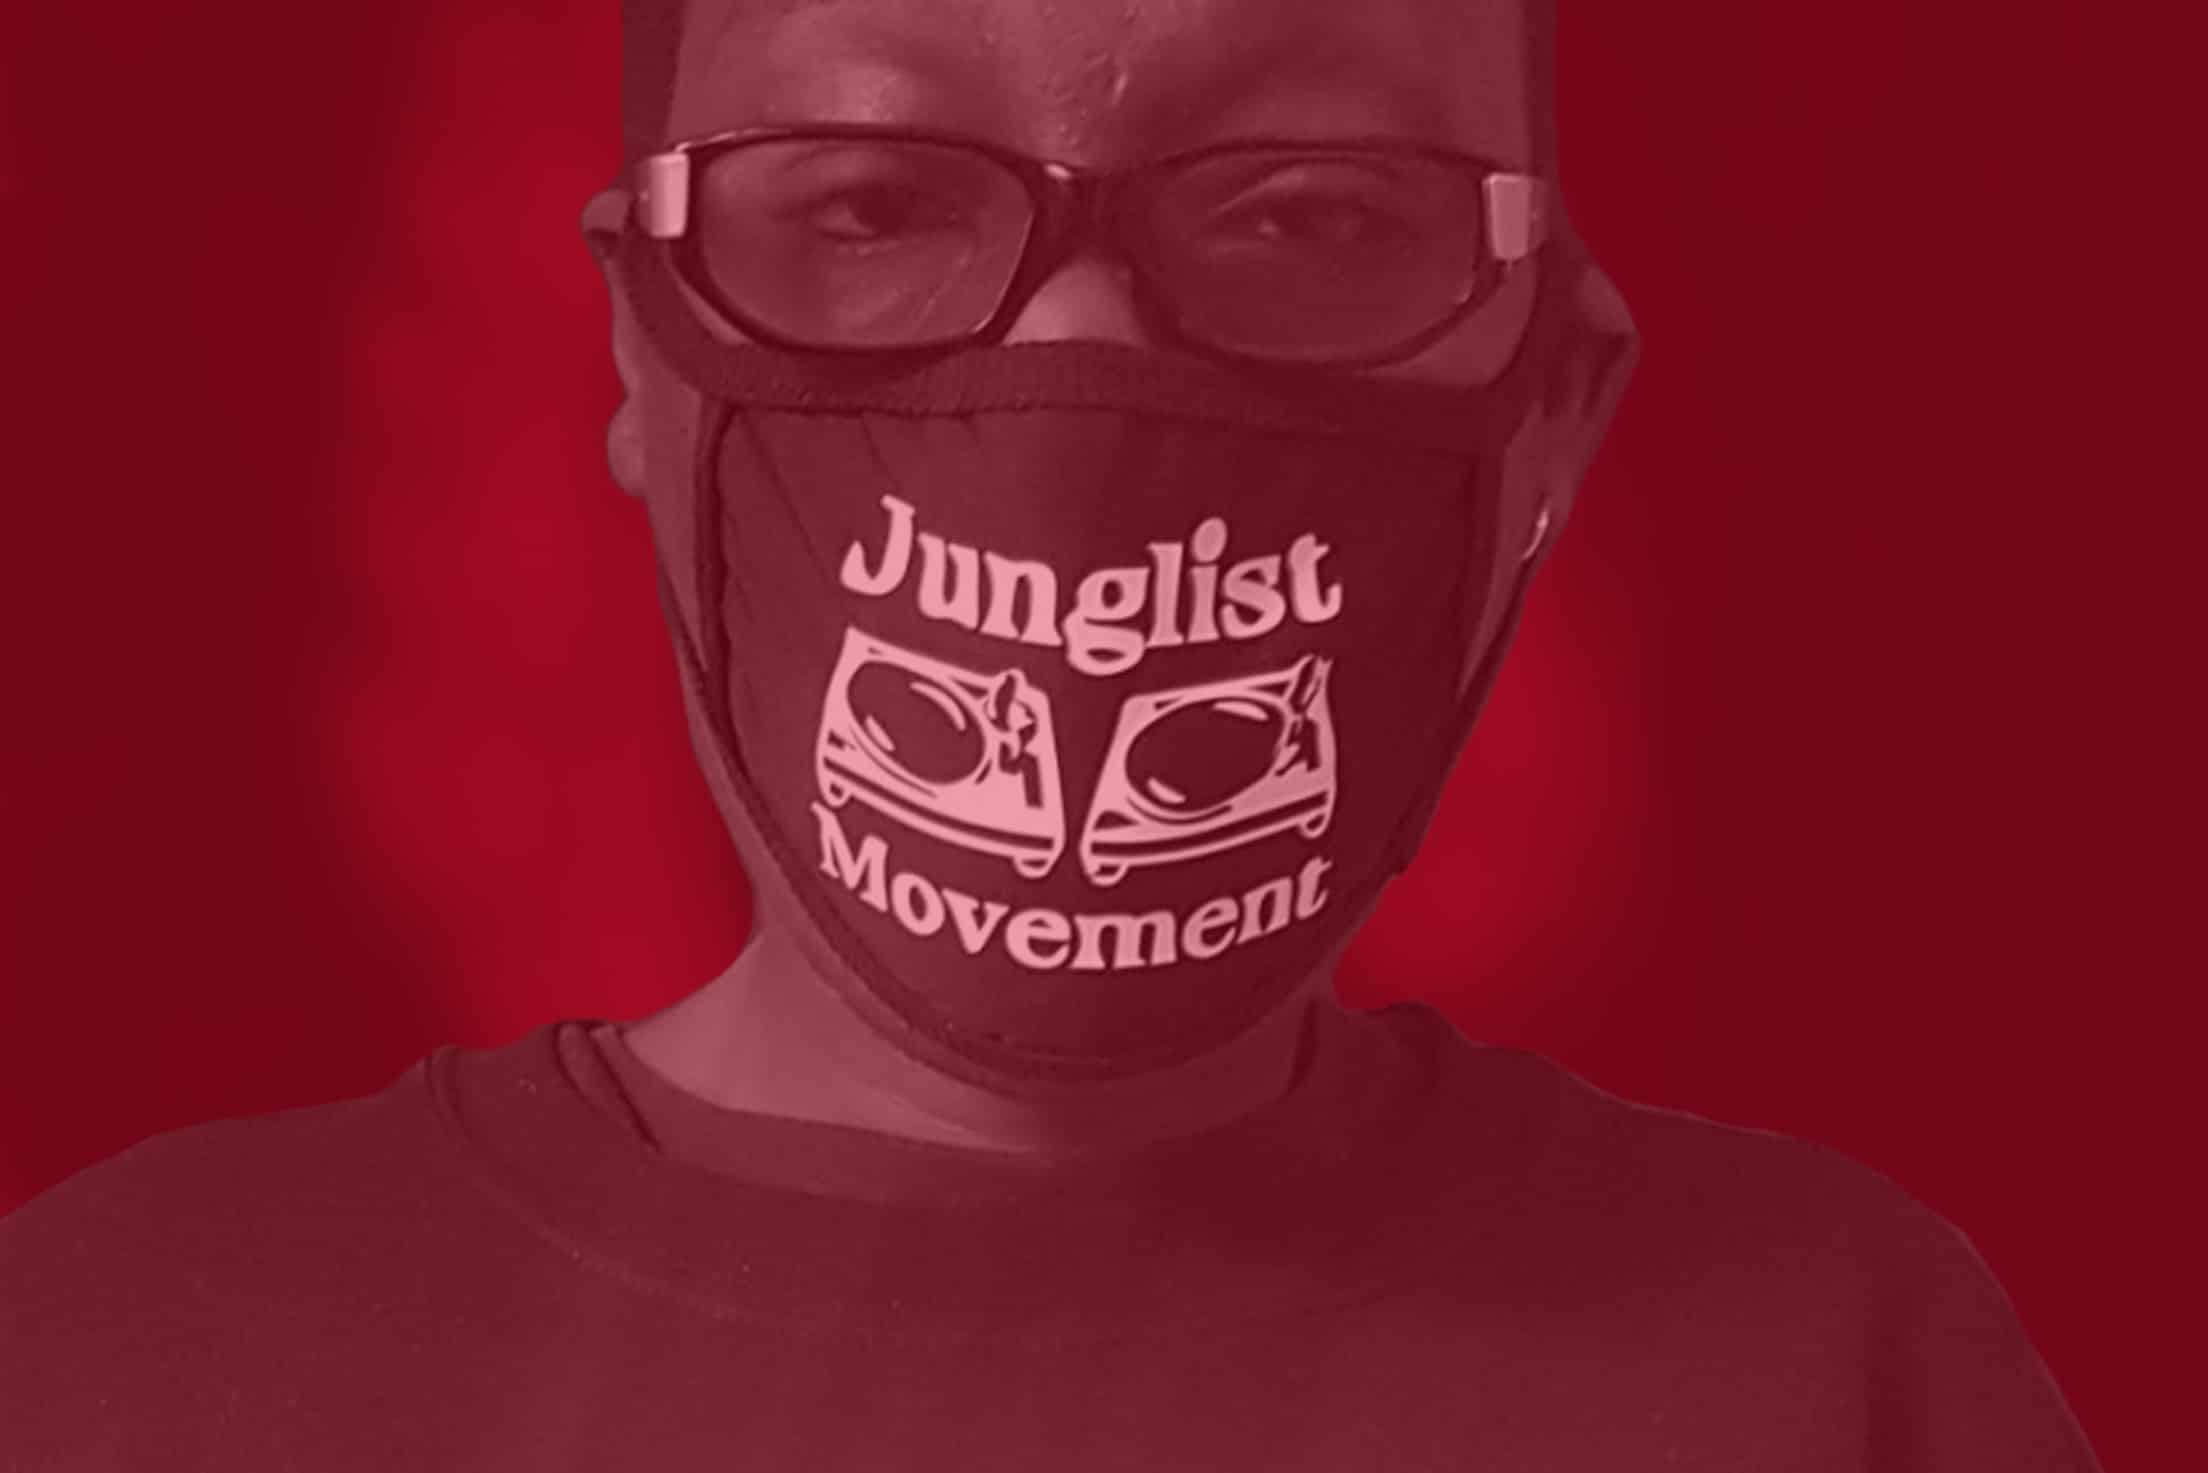 JUNGLIST MOVEMENT FACE MASKS CROWDFUNDER LAUNCHED TO RAISE MONEY FOR NHS